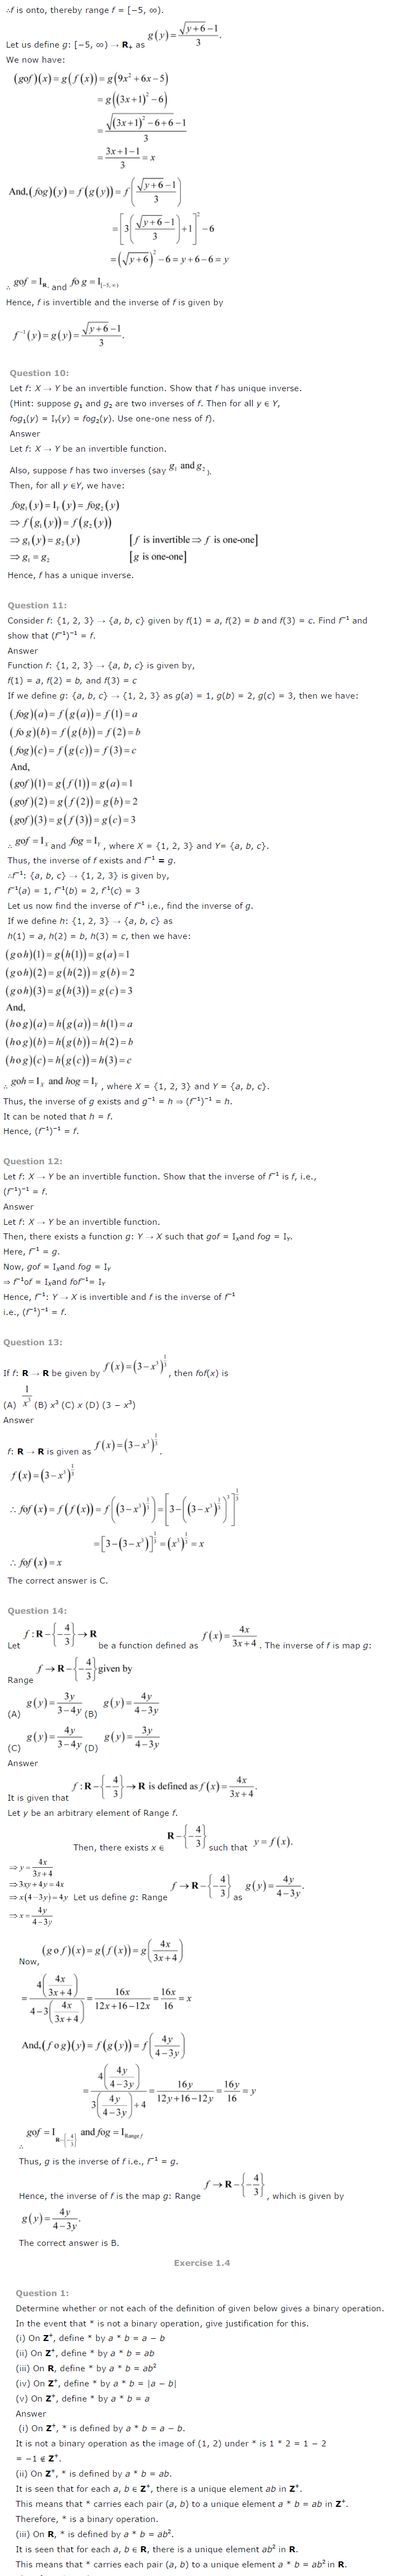 NCERT Solutions For Class 12 Maths Chapter 1 Relations and Functions-7